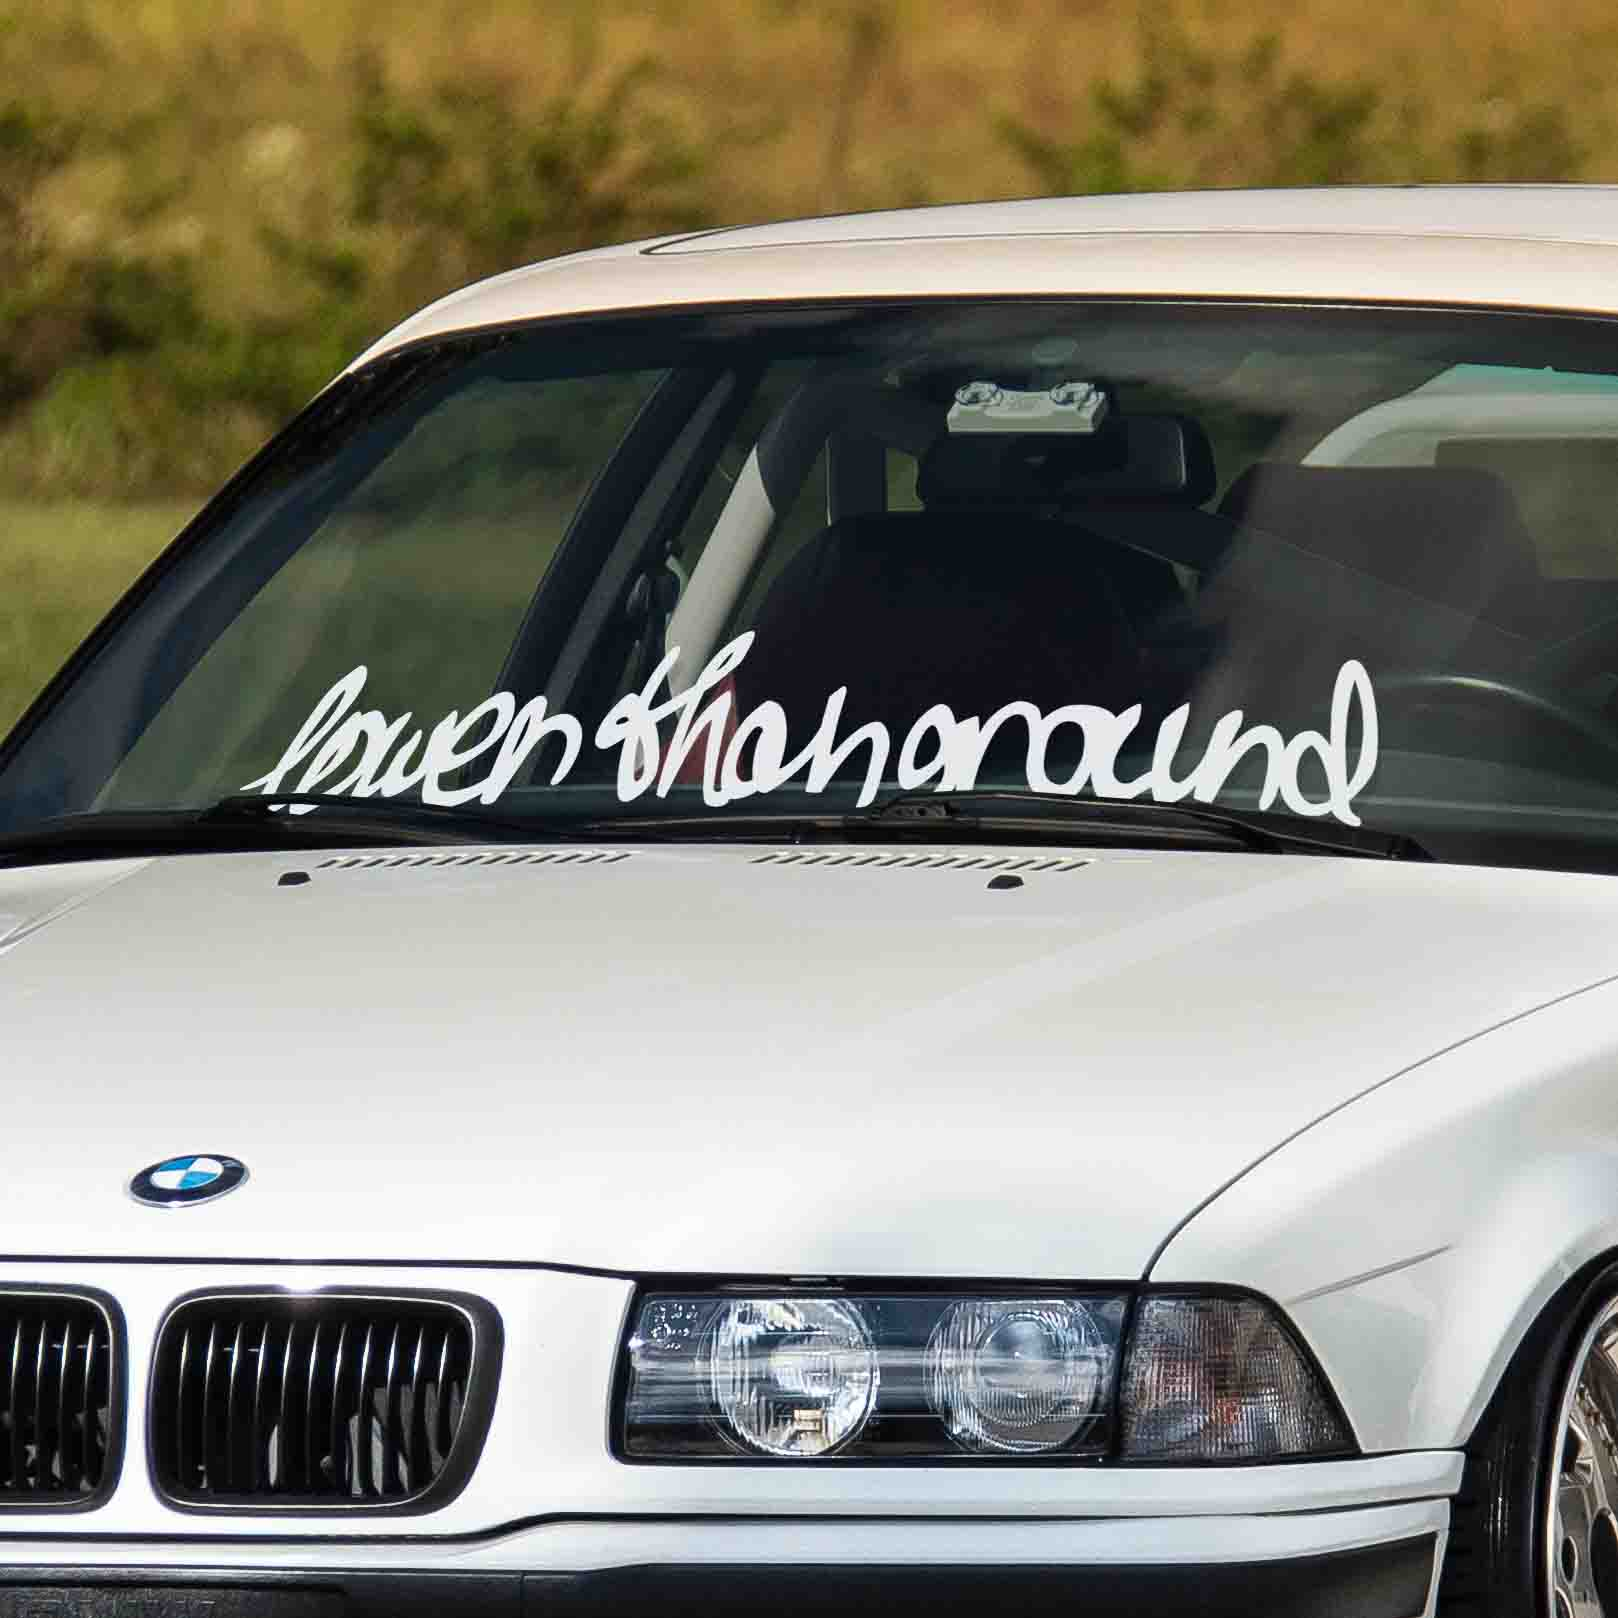 Lower Than Ground car windshield banner. Great for tuned cars or show cars. Available in different colors. Banner comes with installation instructions.